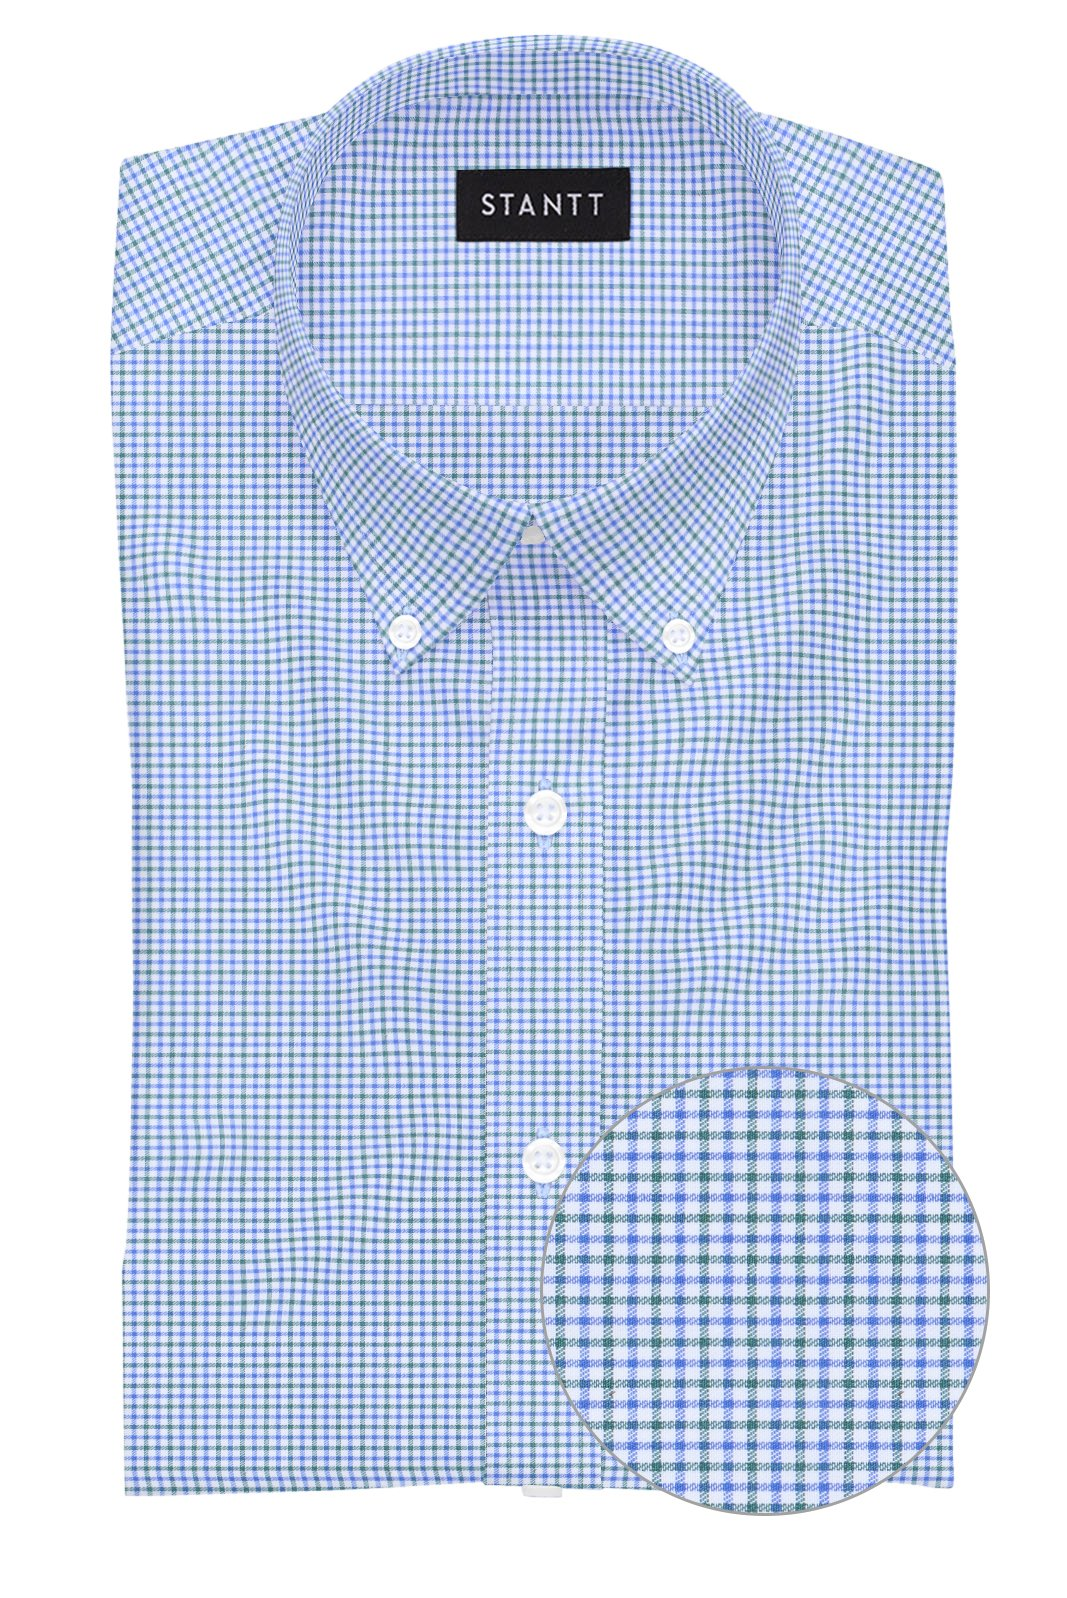 Green and Blue Mini Tattersall: Button-Down Collar, Barrel Cuff